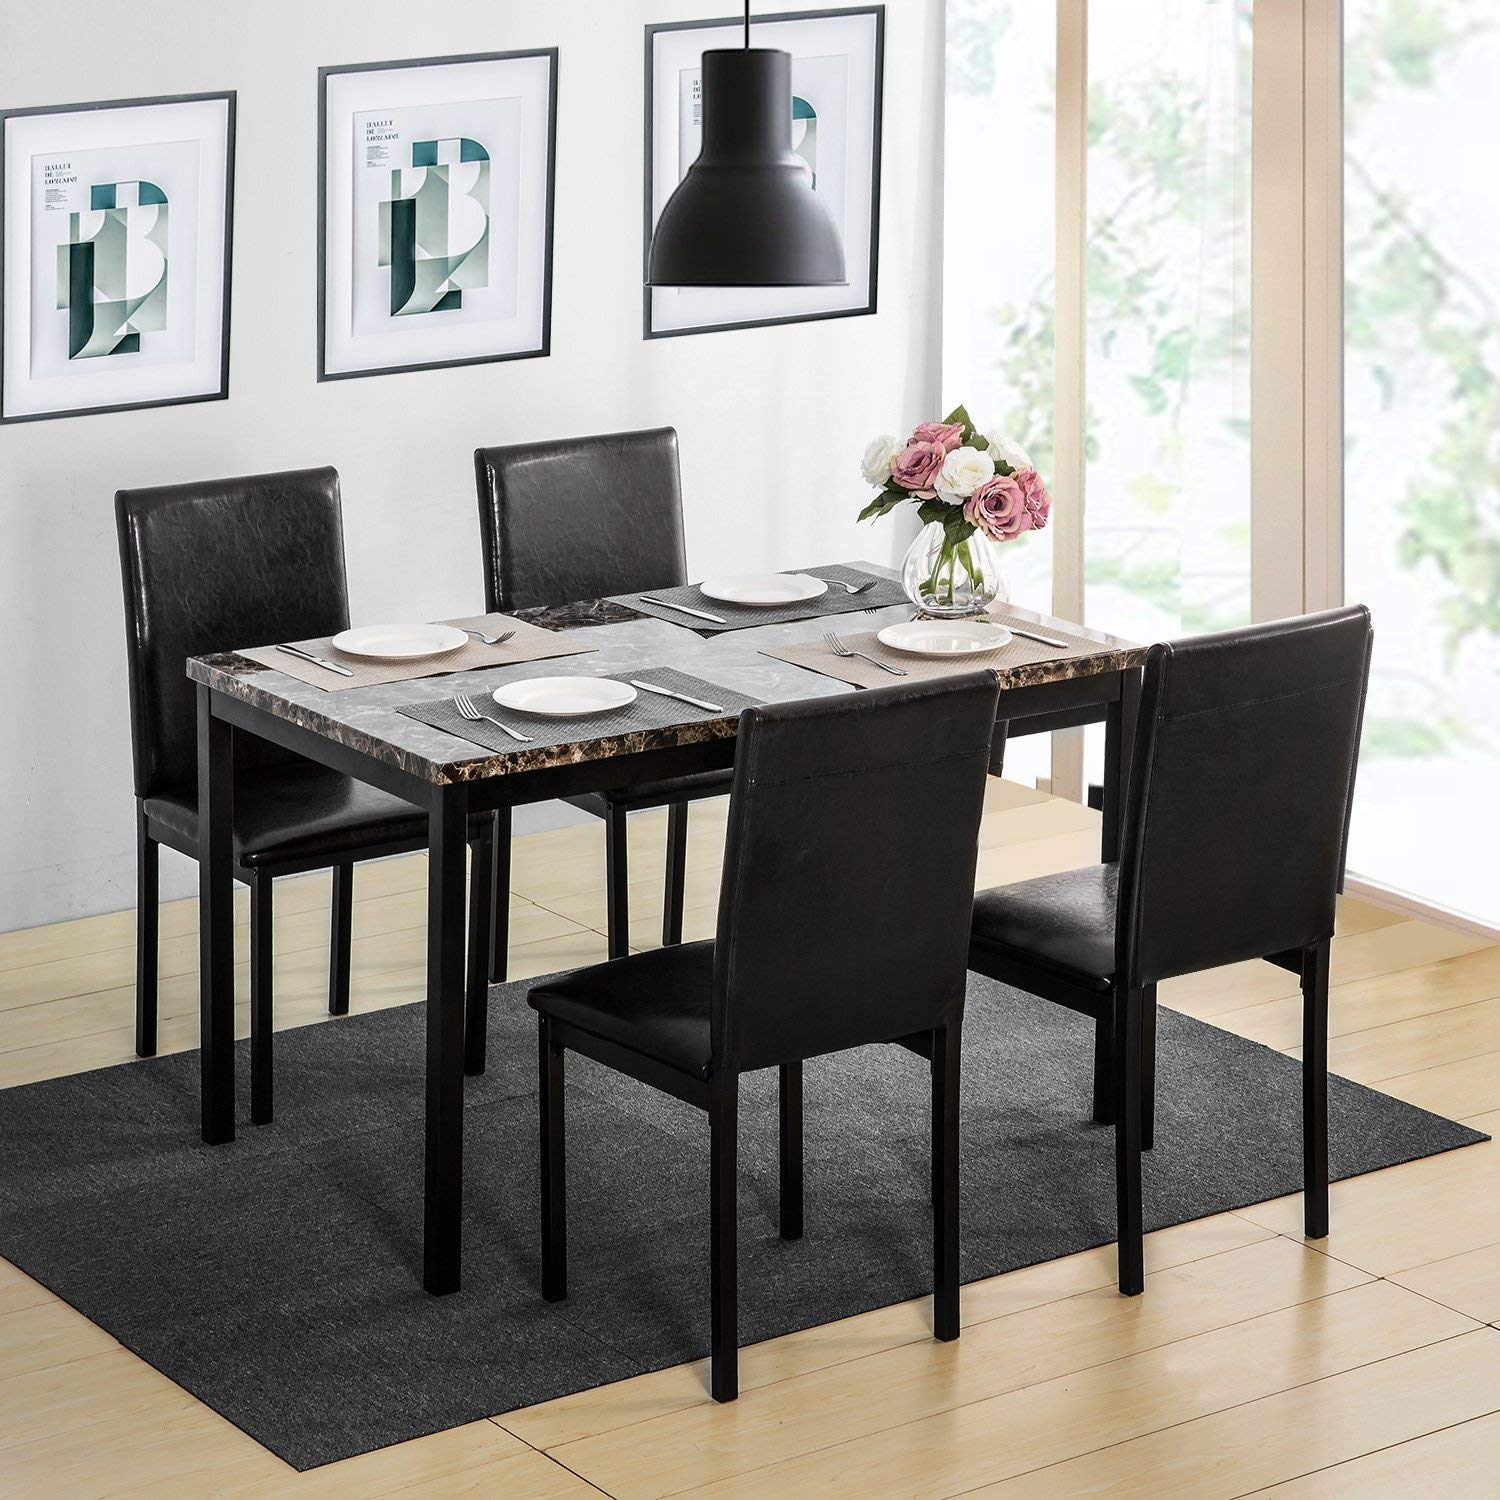 Harper & Bright Designs 5Pcs Dining Set Kitchen Table Set Dining Table and 4 Leather Chairs by Harper & Bright Designs